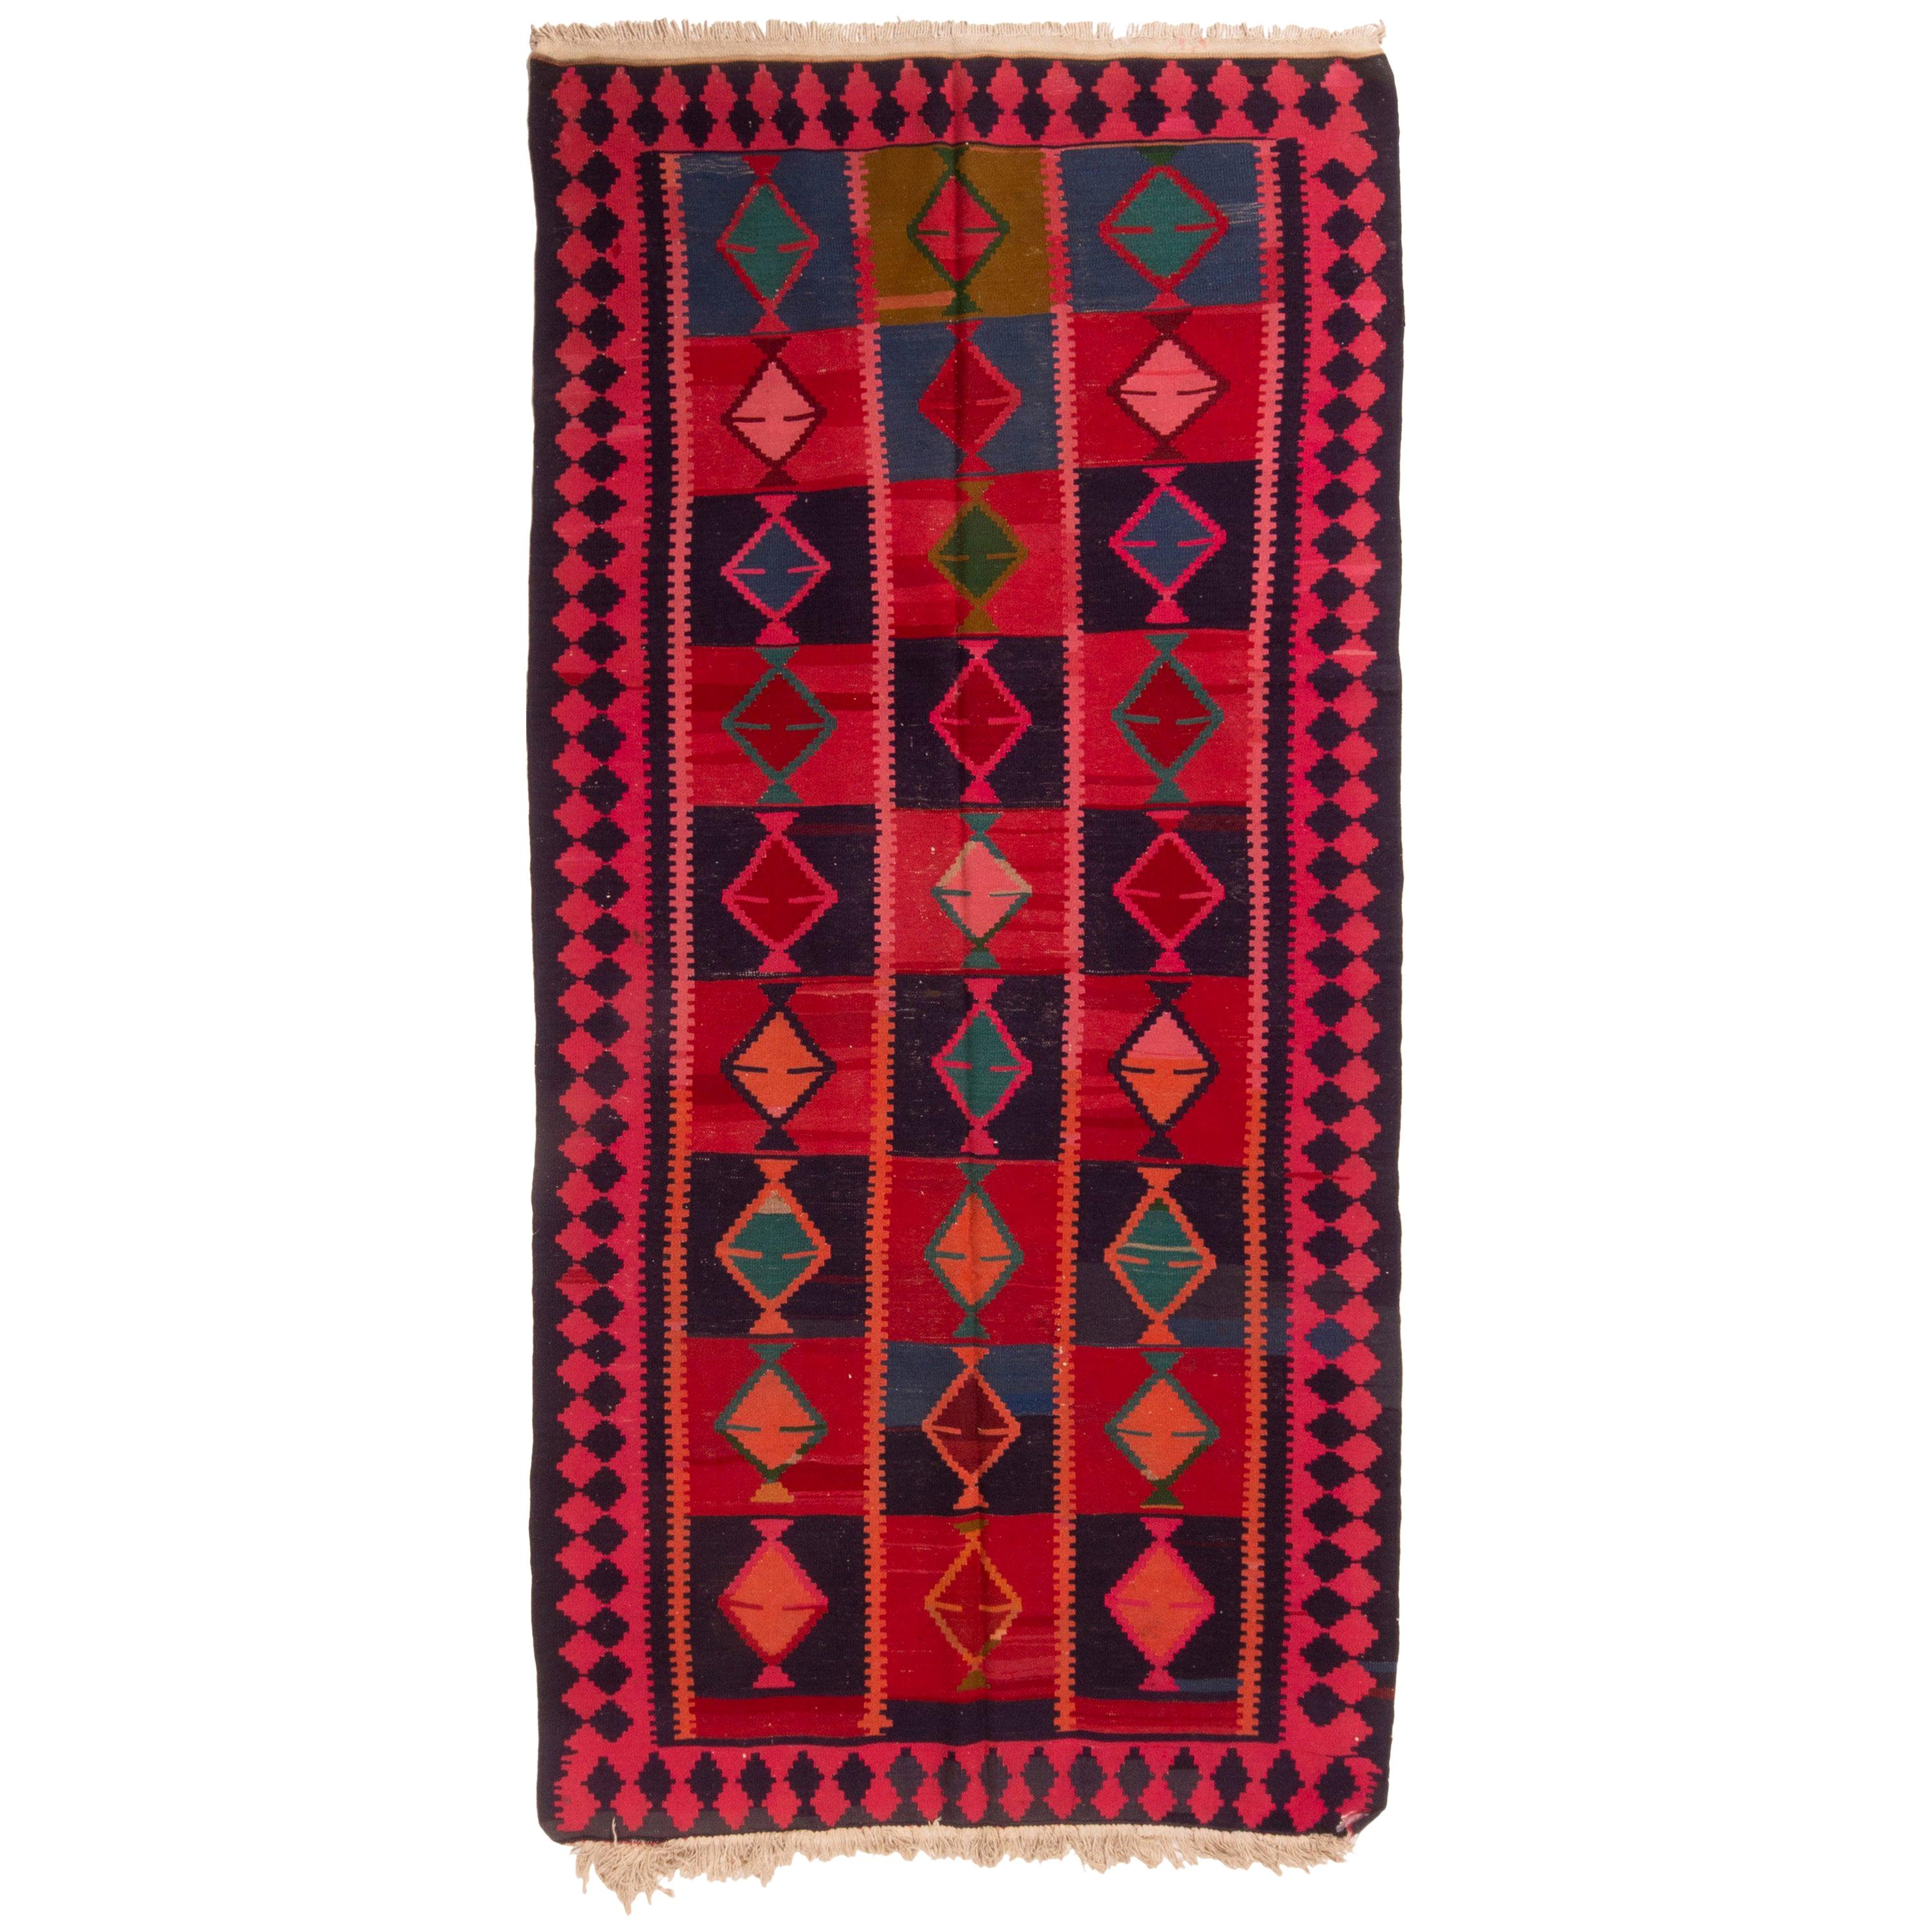 Antique Persian Red and Blue Wool Geometric Pattern Kilim Rug